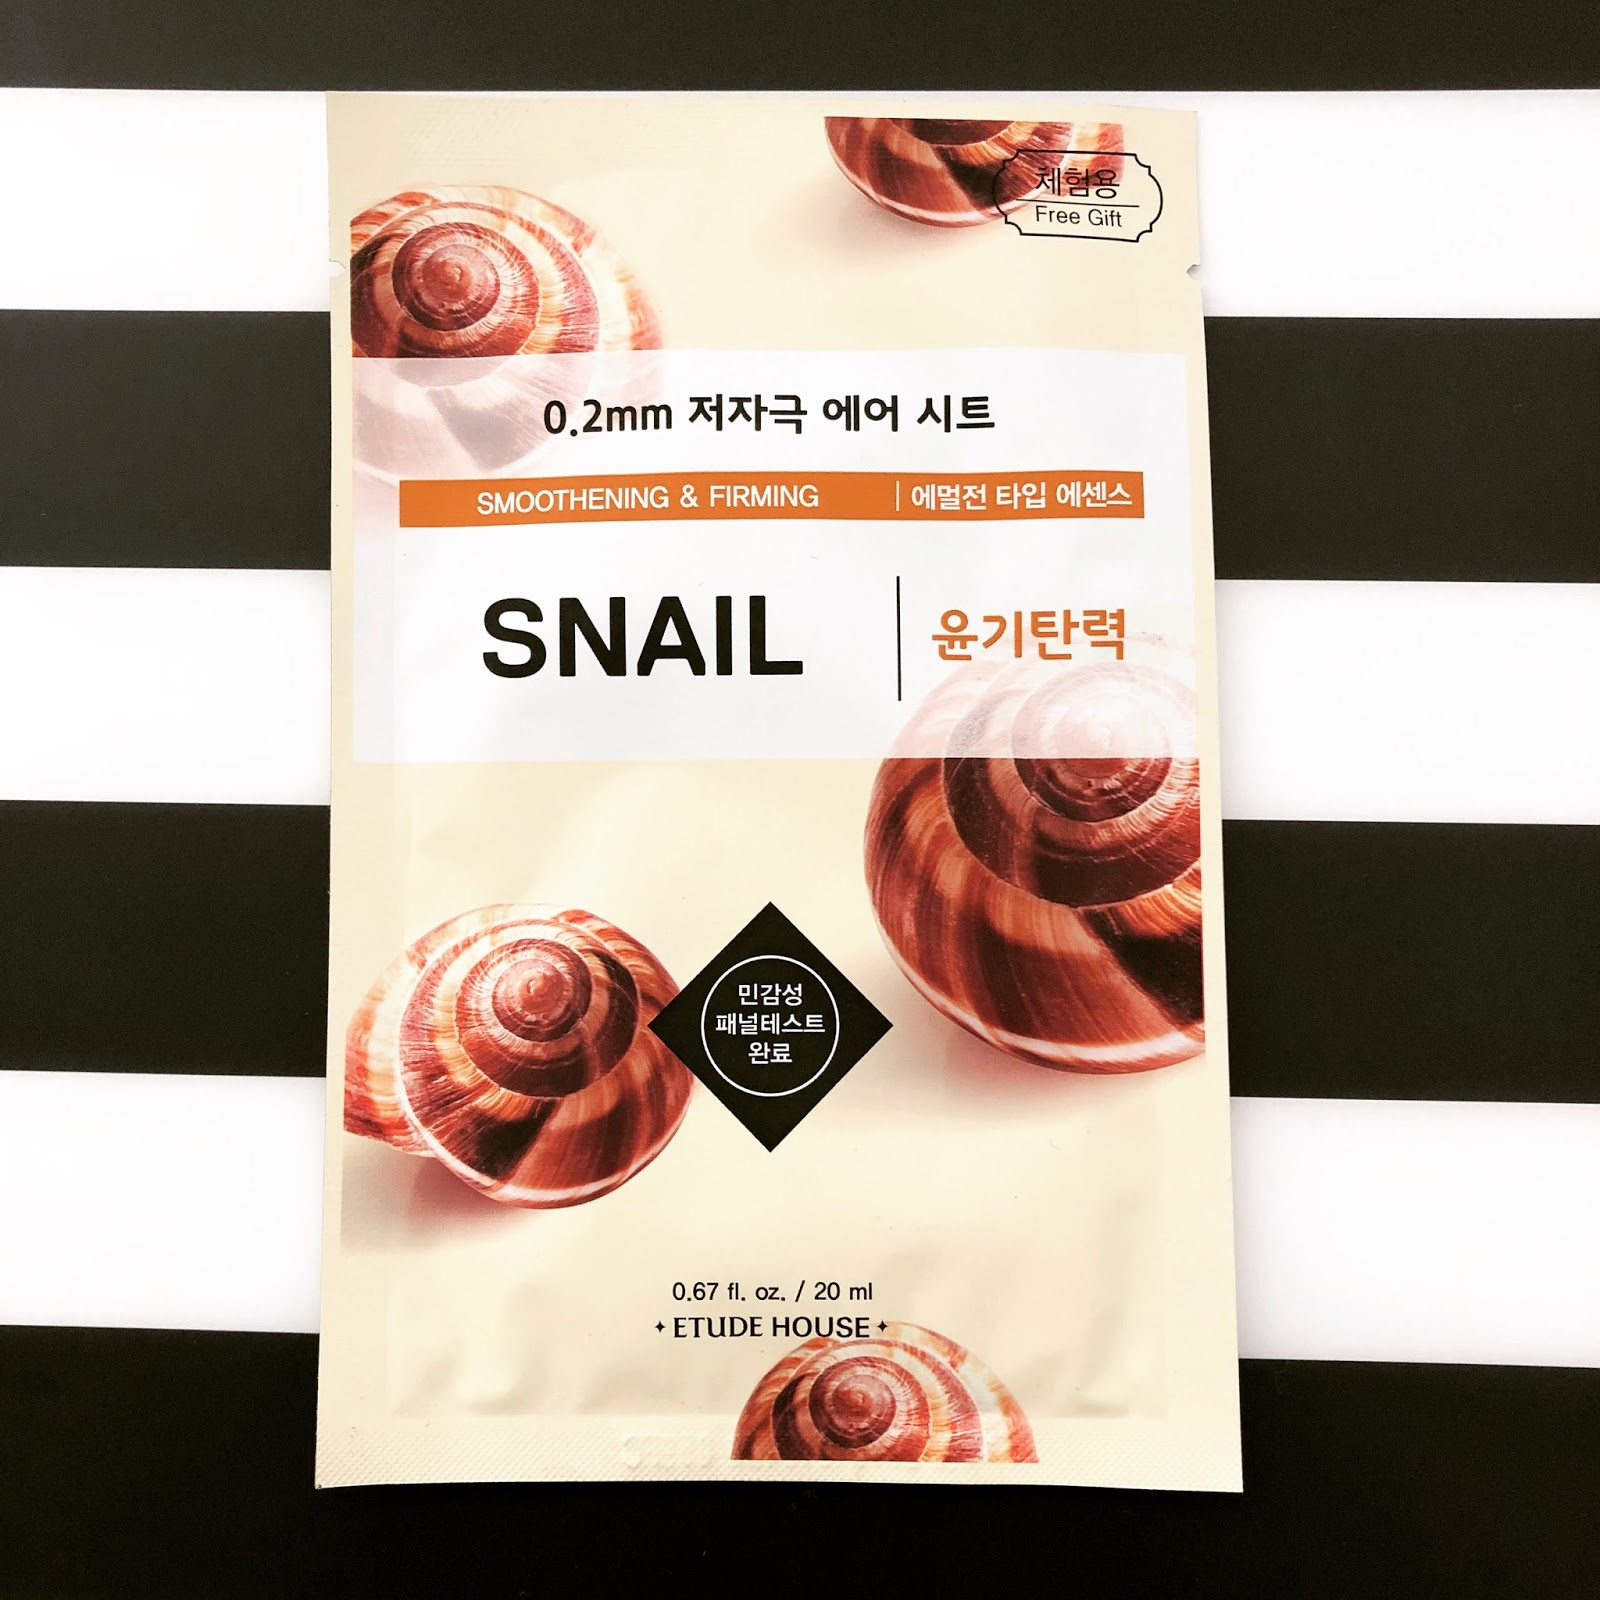 Review: Etude House 0 2mm Therapy Air Mask in Snail | REYAR KYAW